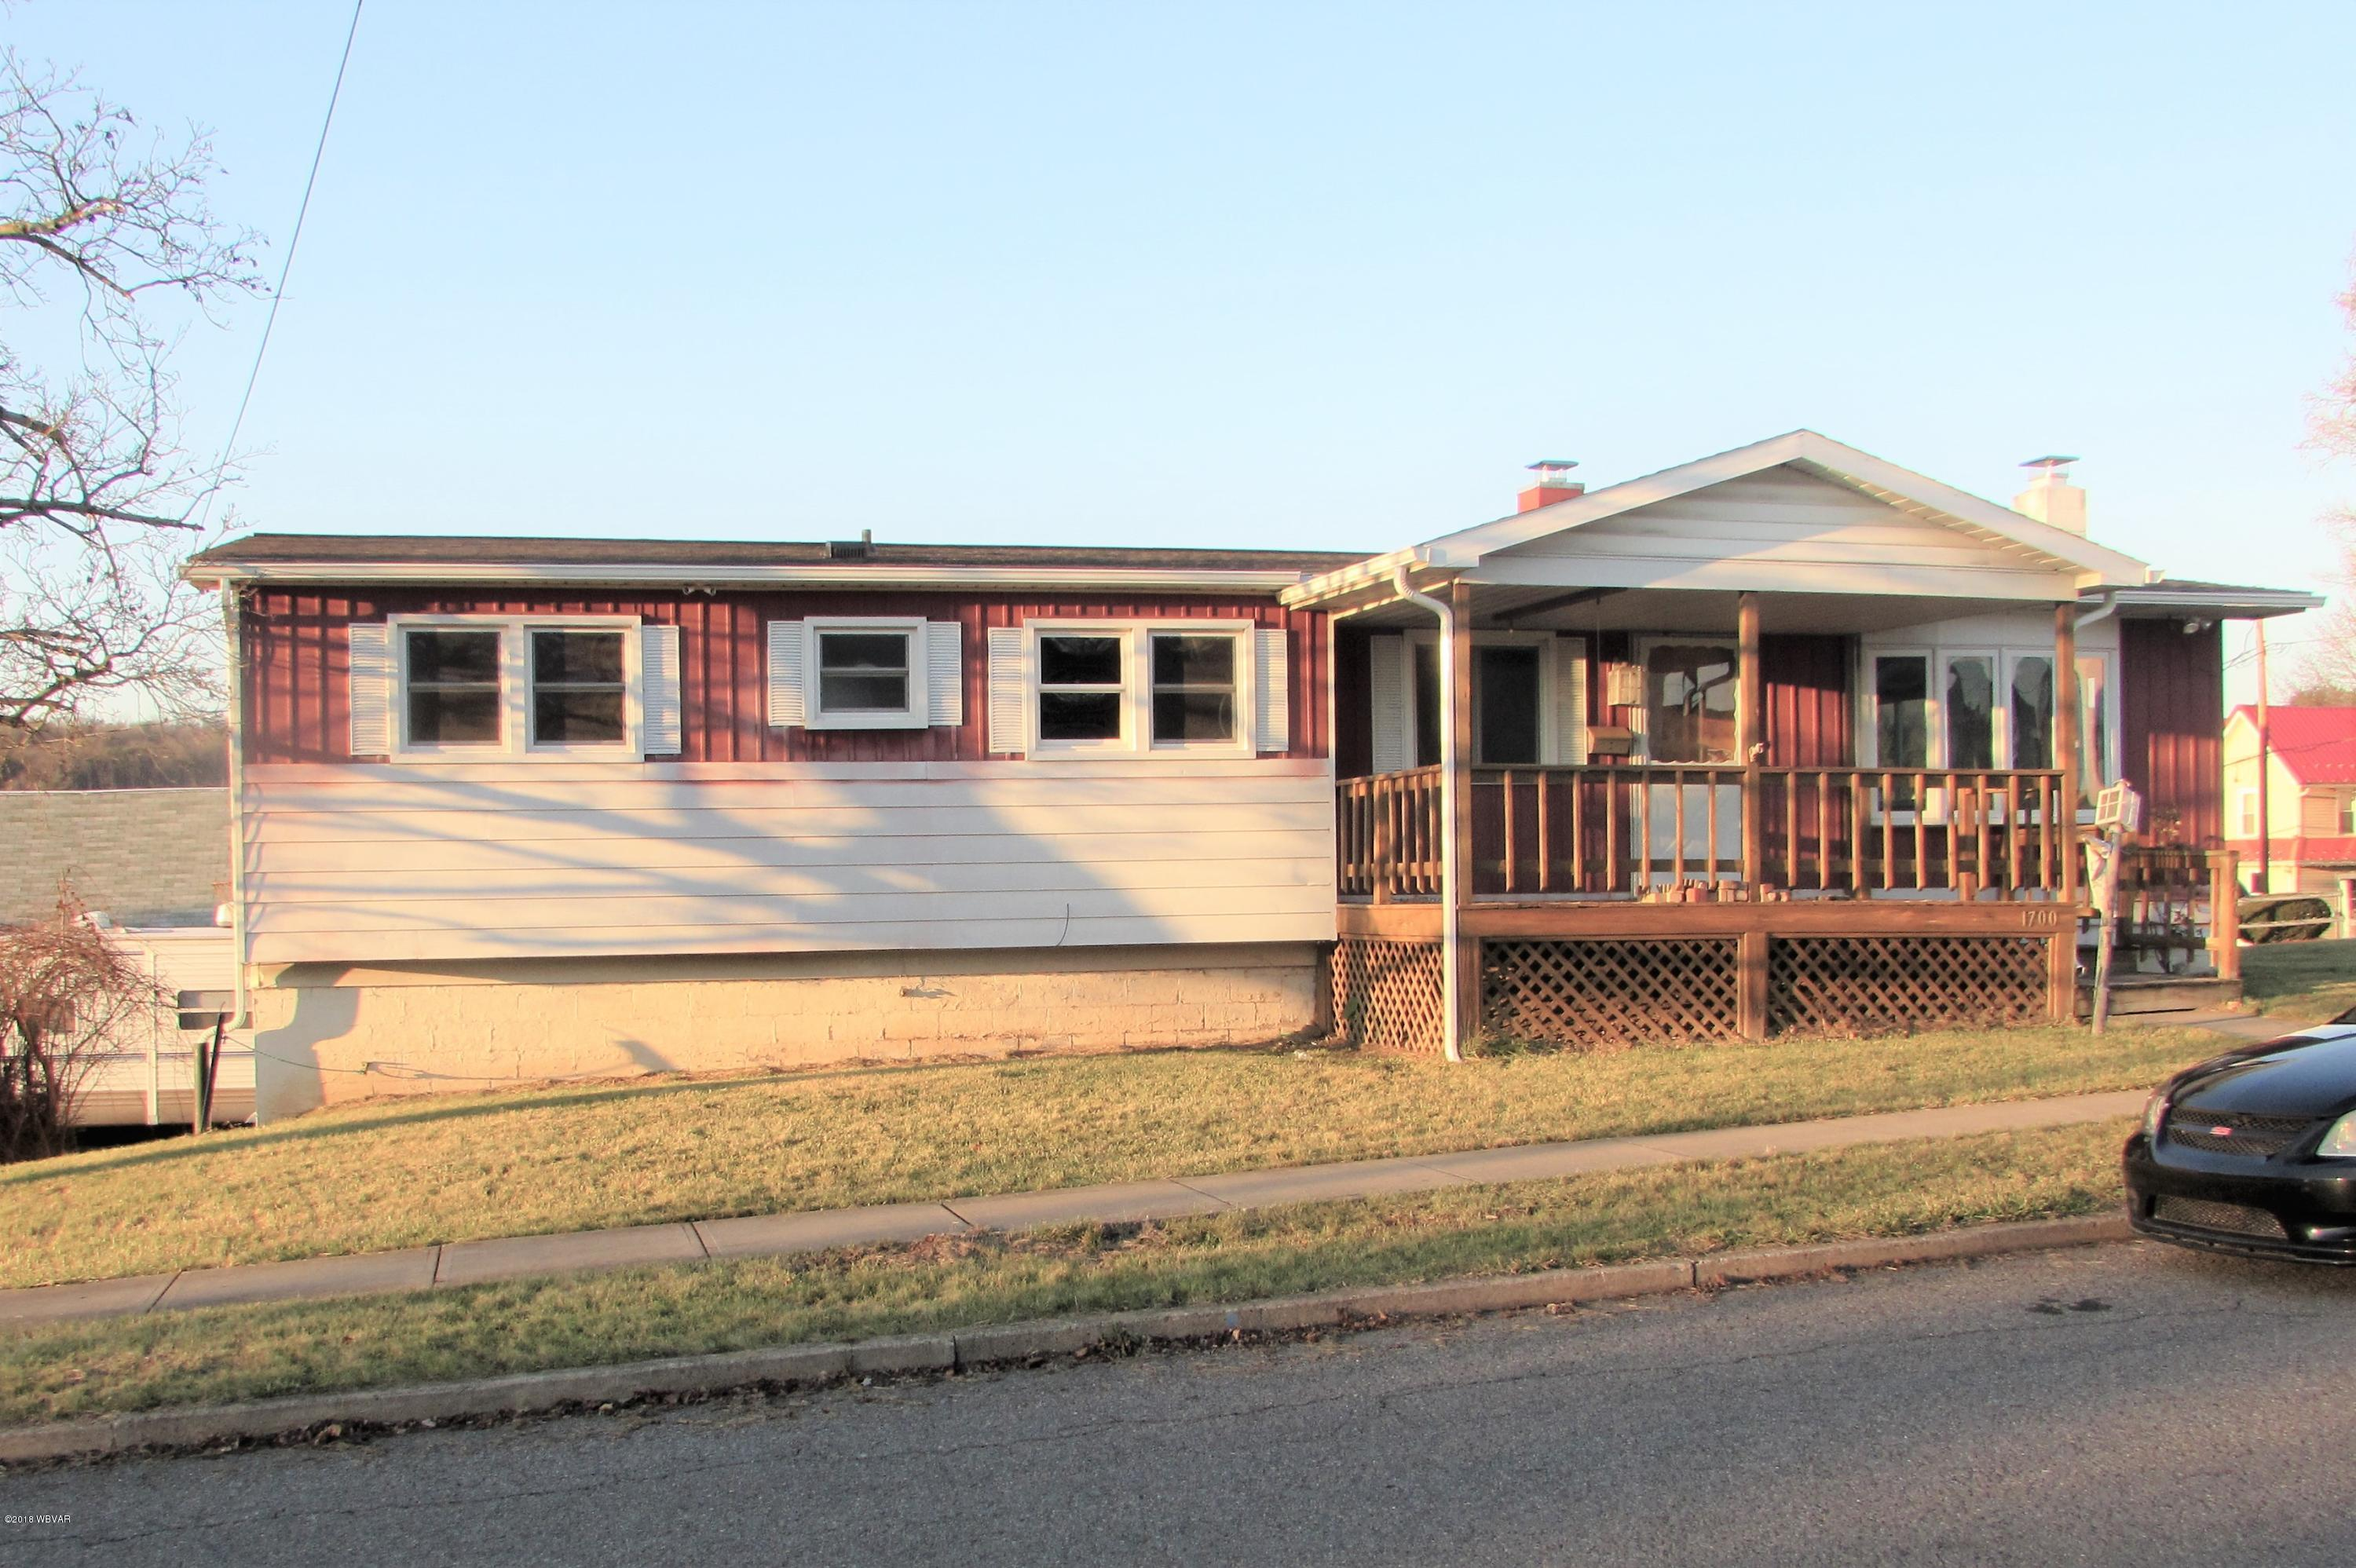 1700 WALNUT STREET,Jersey Shore,PA 17740,3 Bedrooms Bedrooms,2 BathroomsBathrooms,Residential,WALNUT,WB-86042